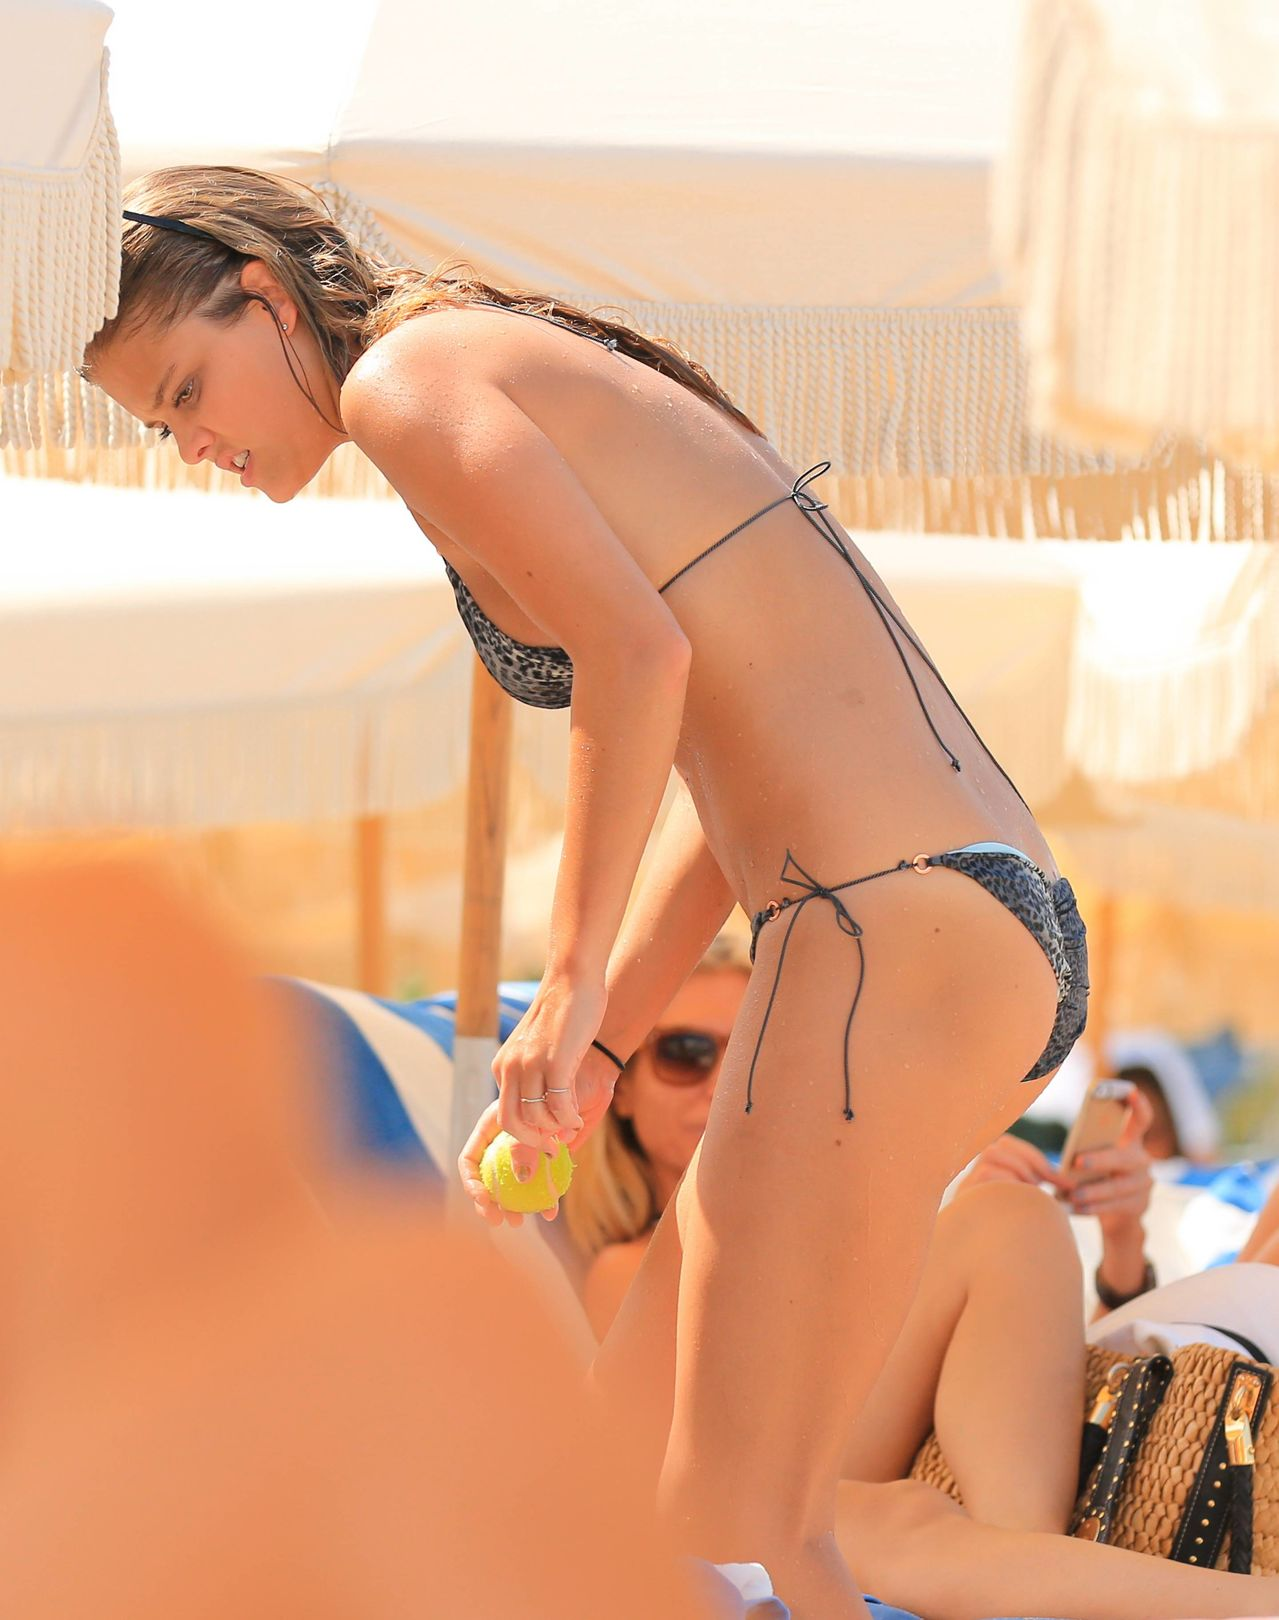 nina-agdal-at-the-beach-miami-july-19-2014-set-2-01